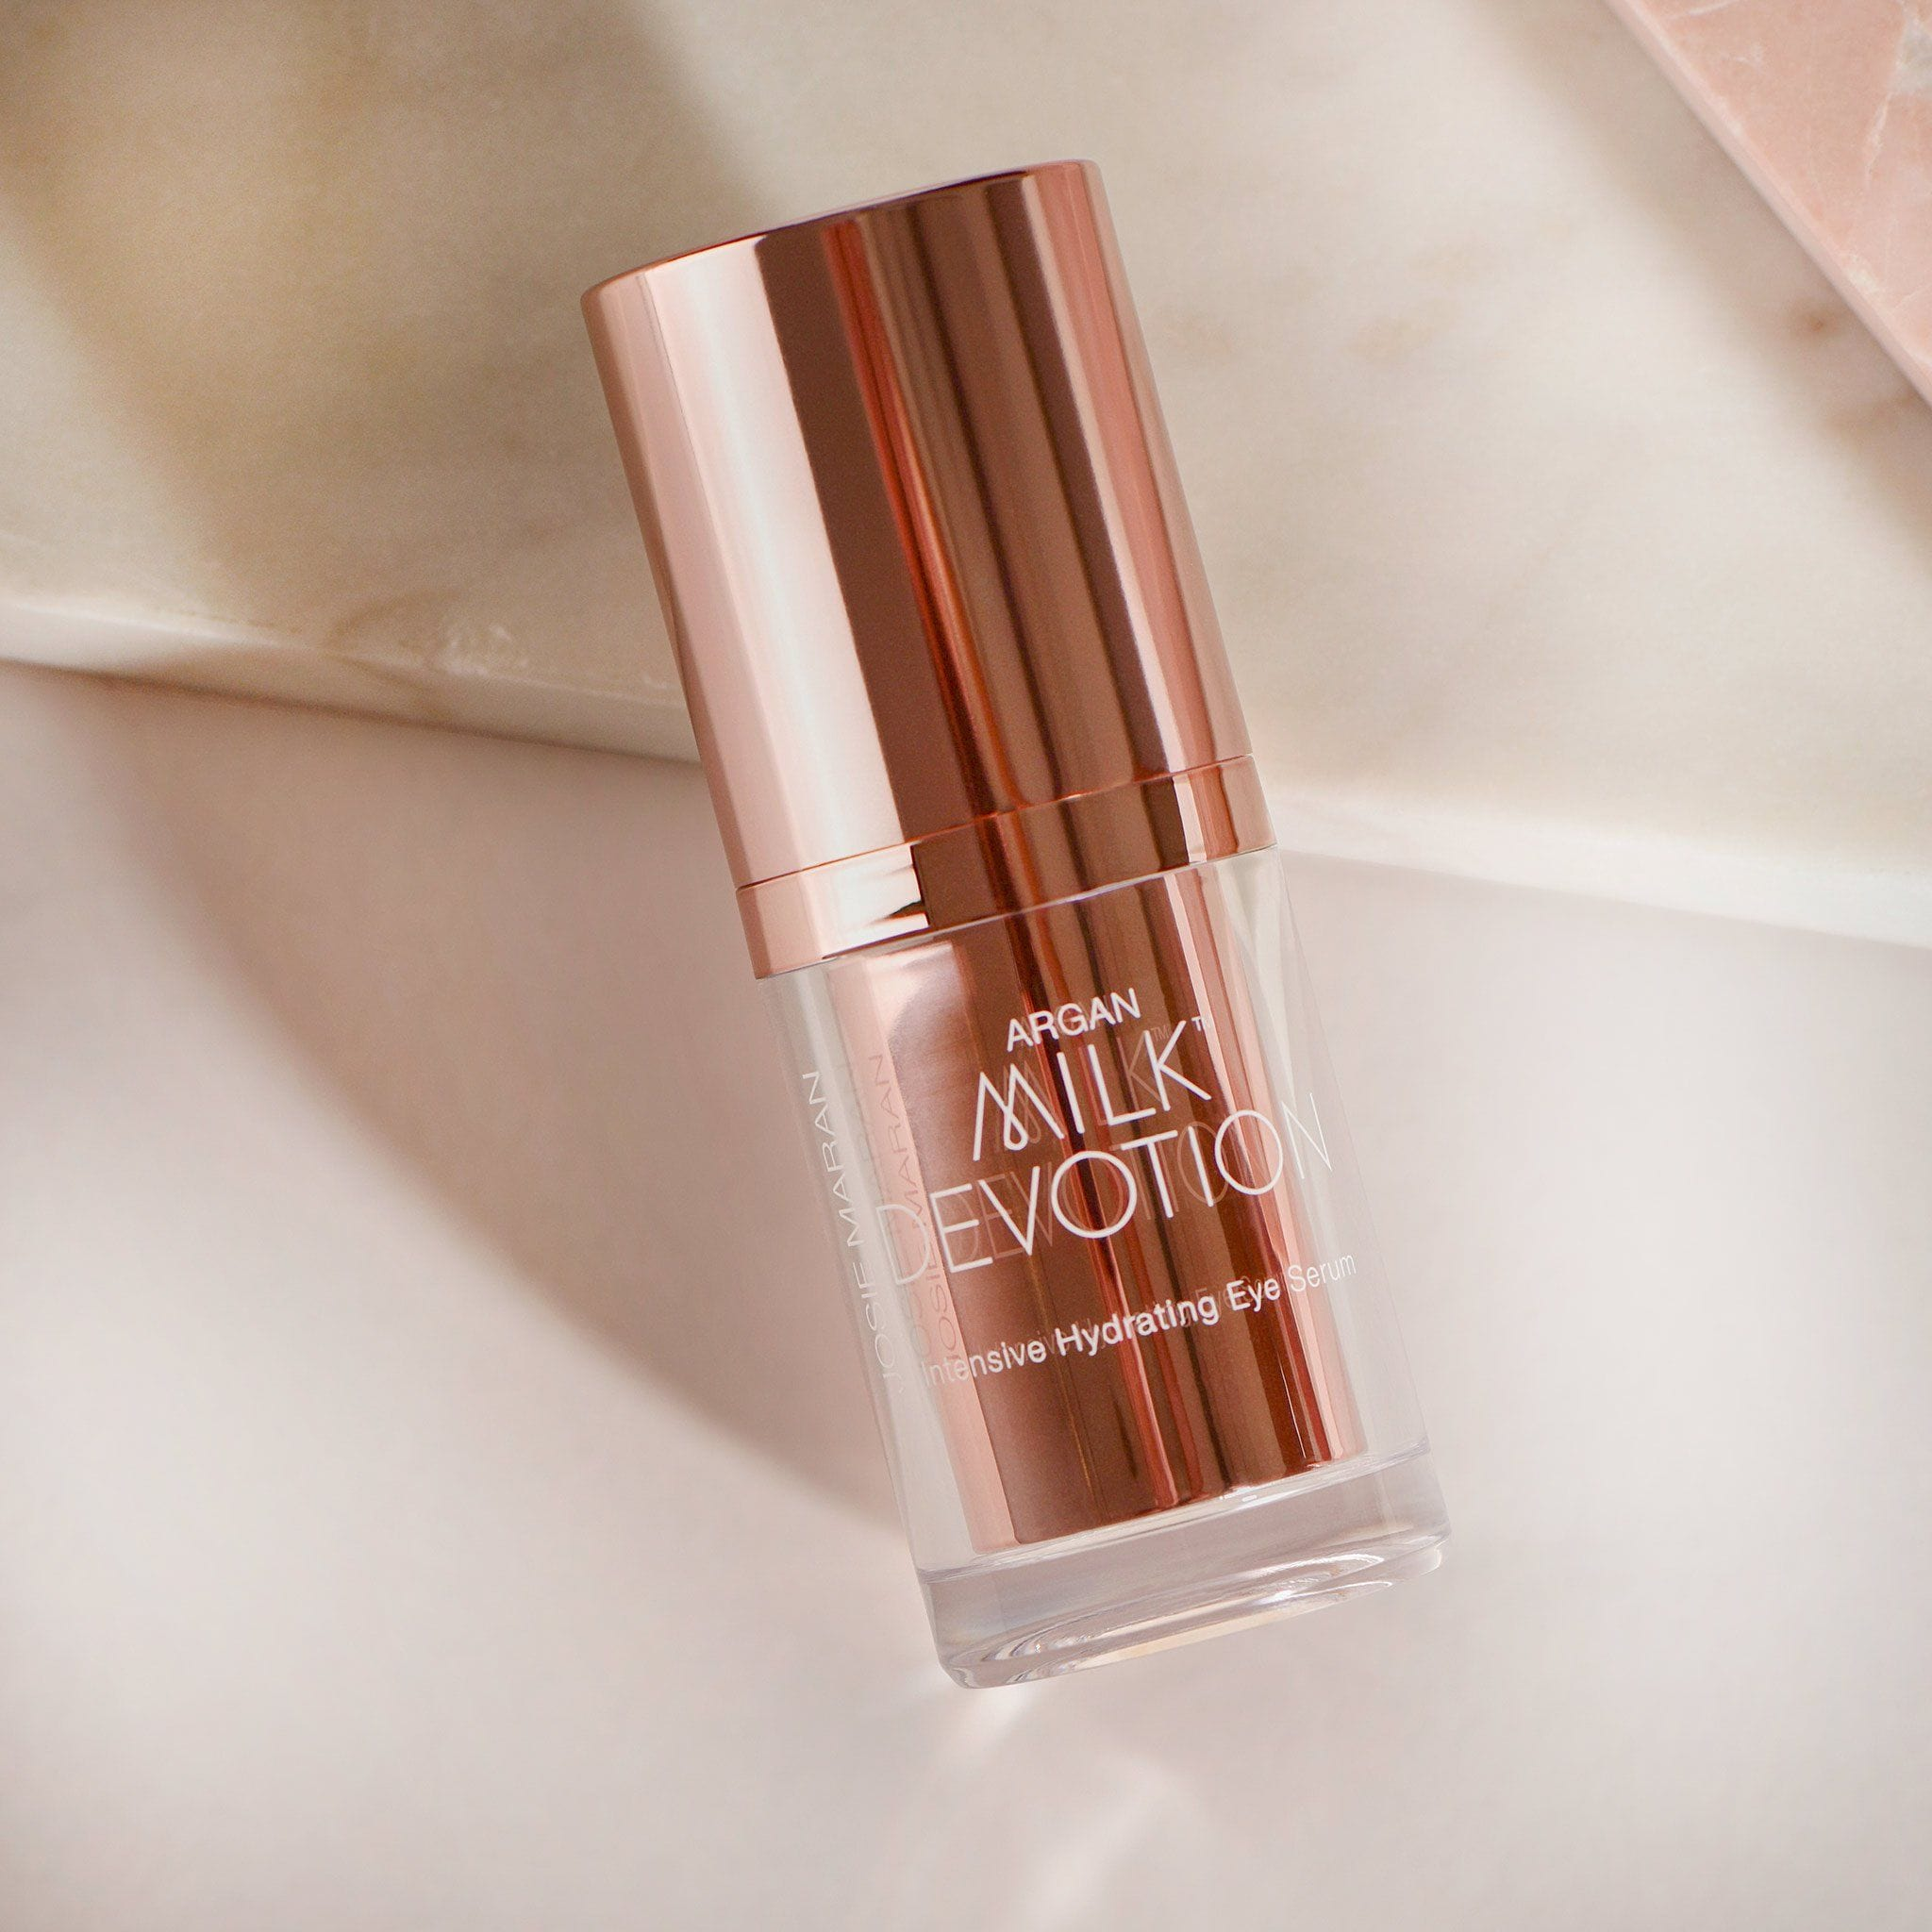 Argan Milk Devotion Intensive Hydrating Eye Serum